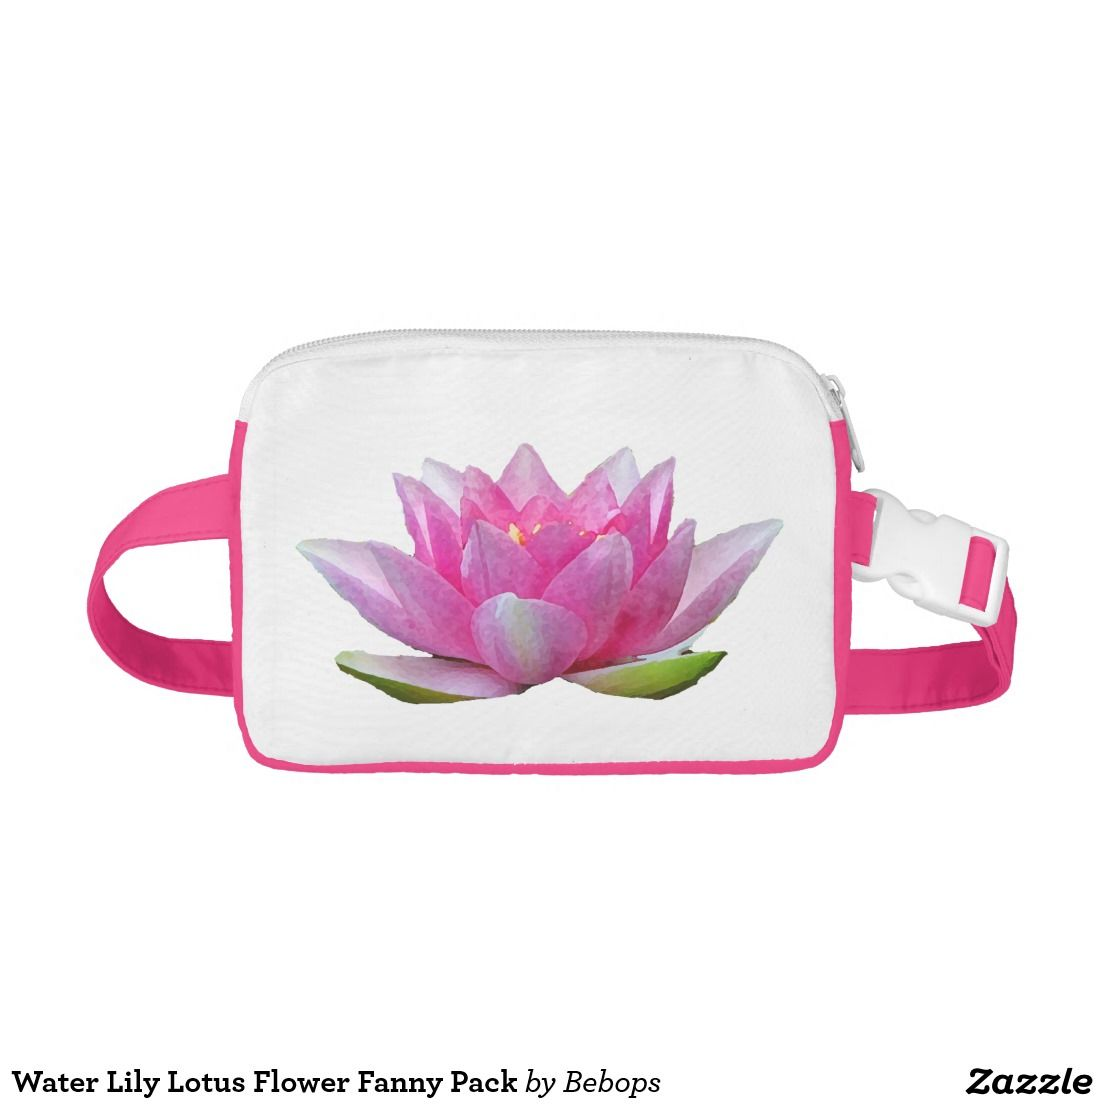 Water Lily Lotus Flower Fanny Pack Cap Sac Fanny Packs All Things